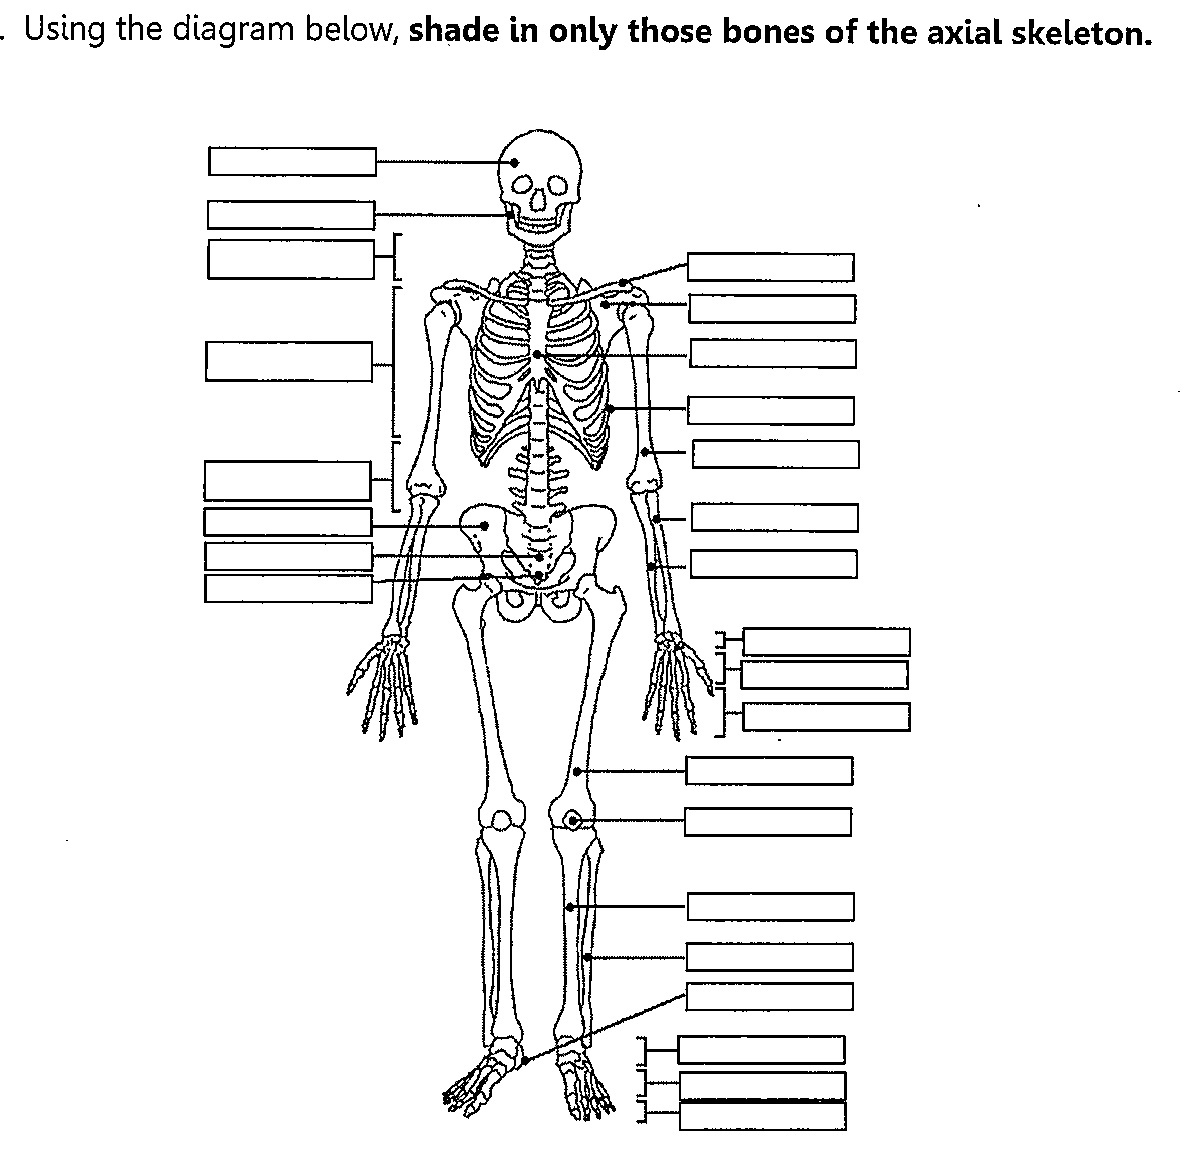 worksheet Appendicular Skeleton Worksheet axial skeleton worksheet fill in the blank yahoo image search results